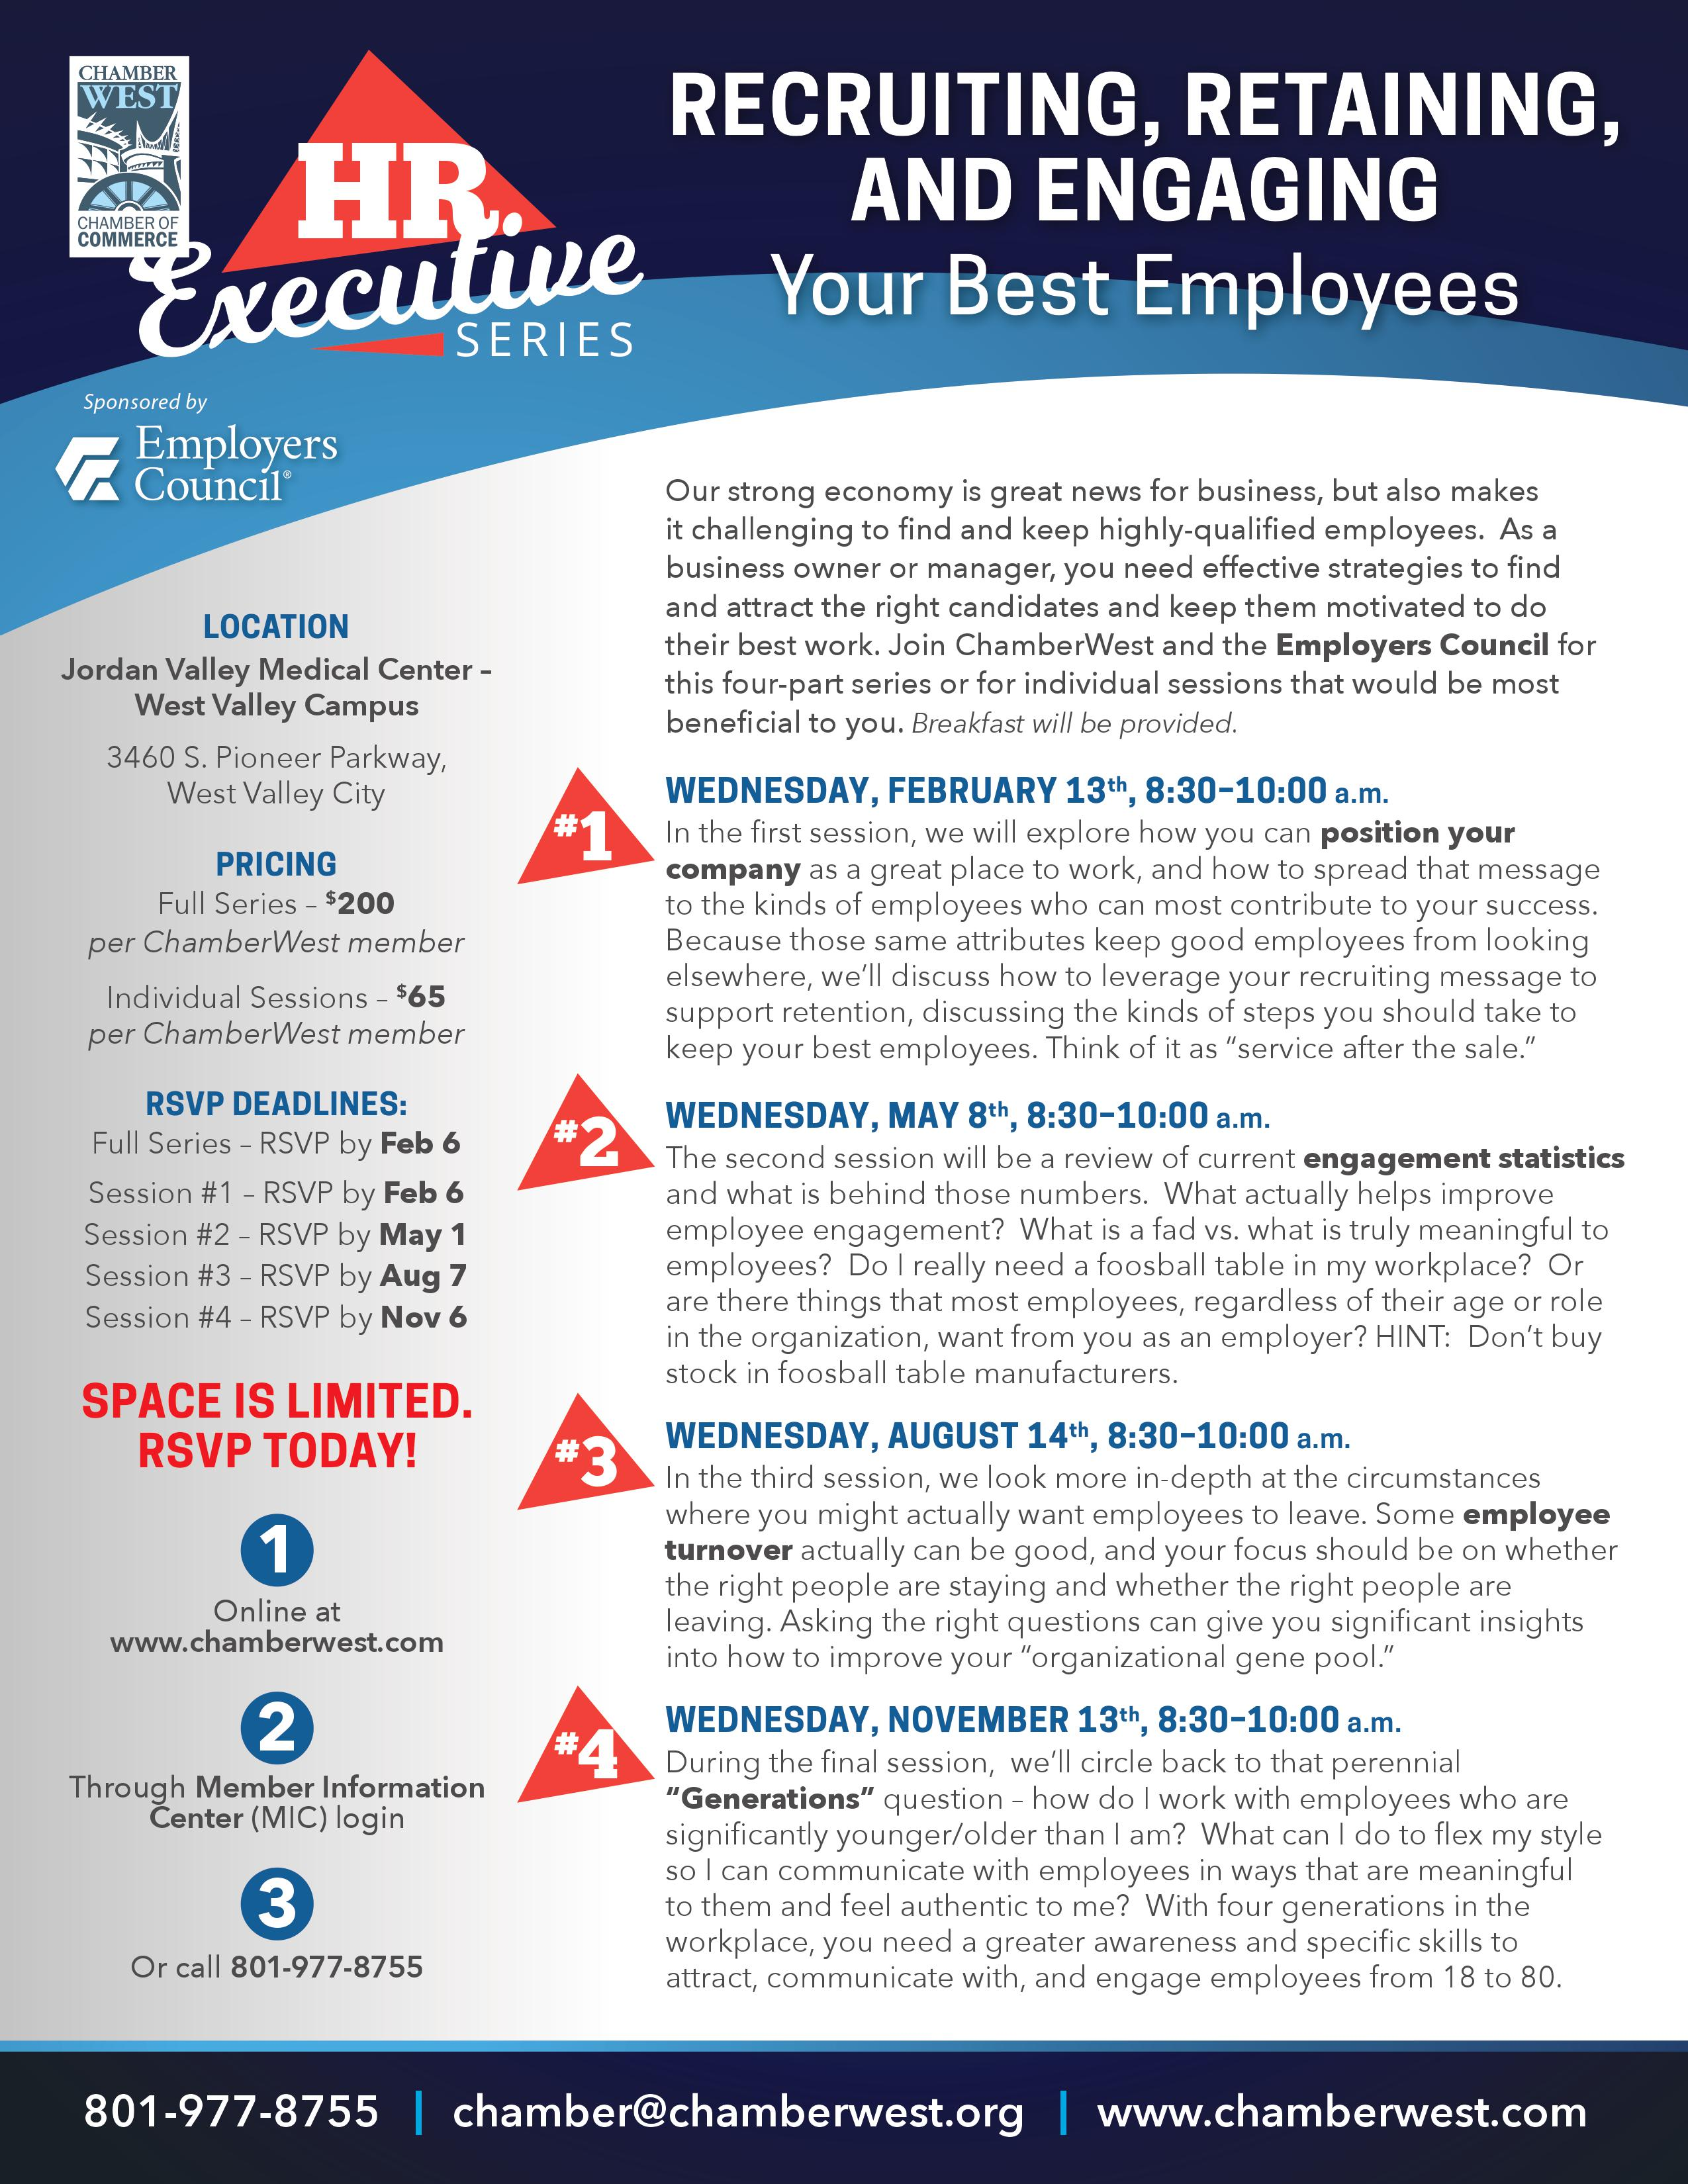 HR-Executive-Series-Flyer.jpg